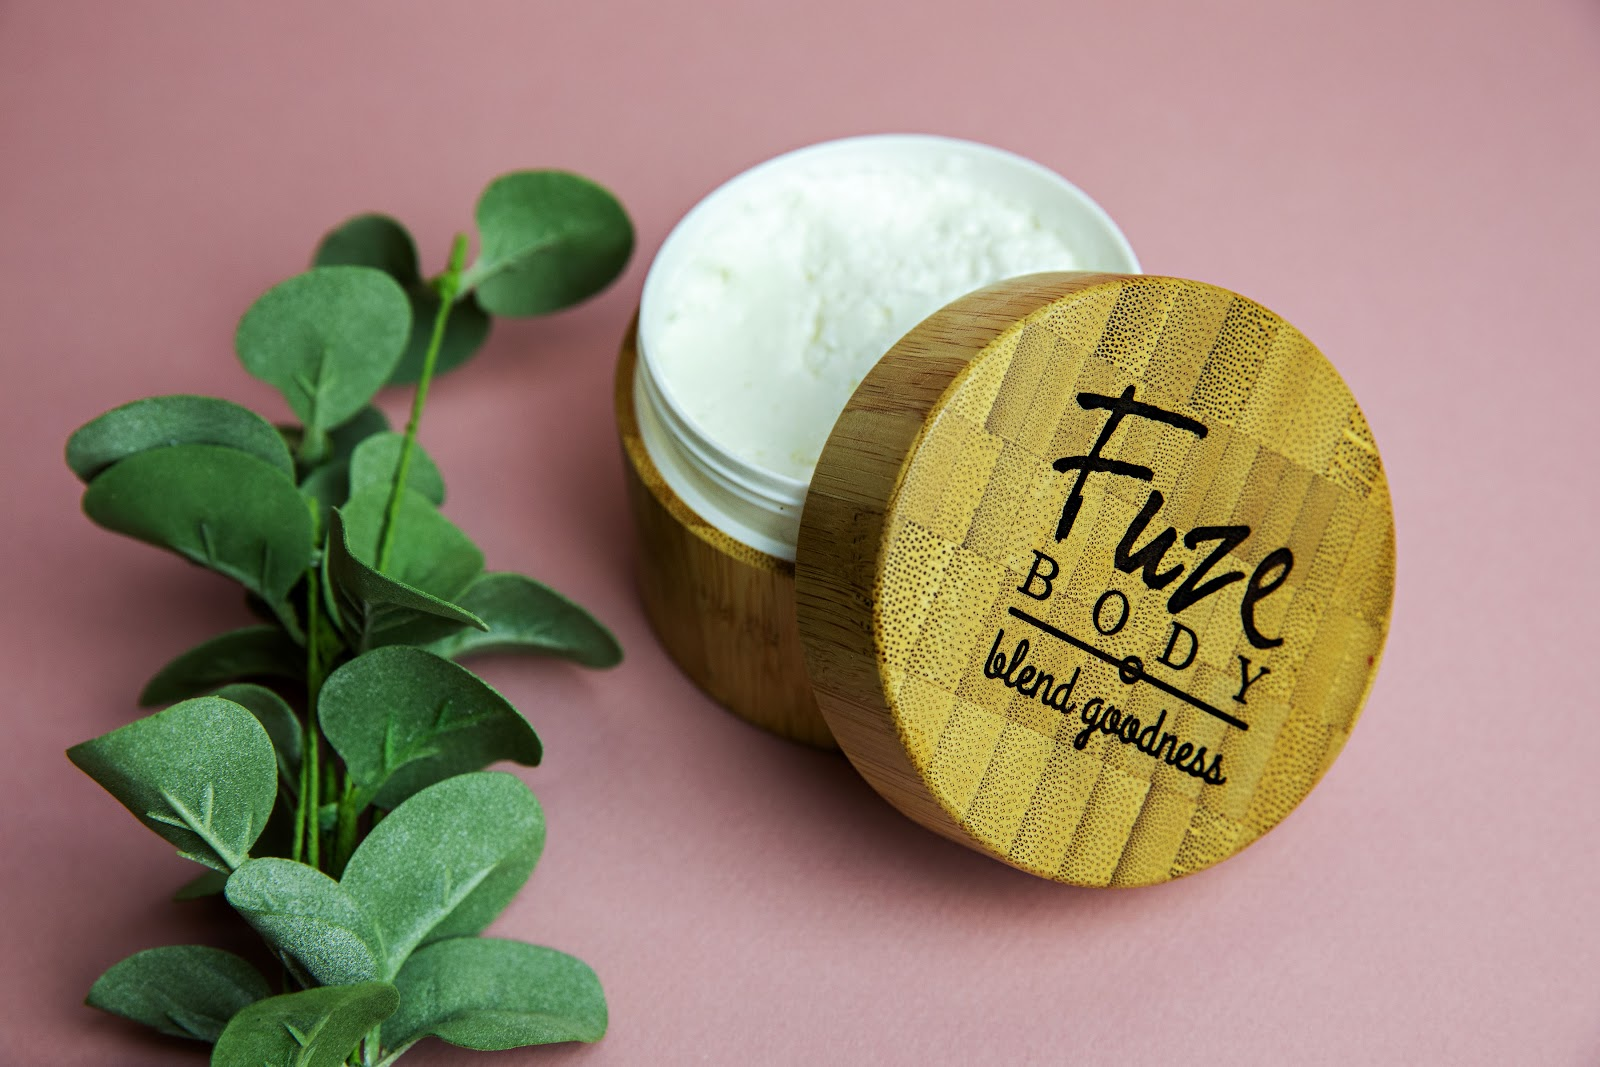 fuze body lotion